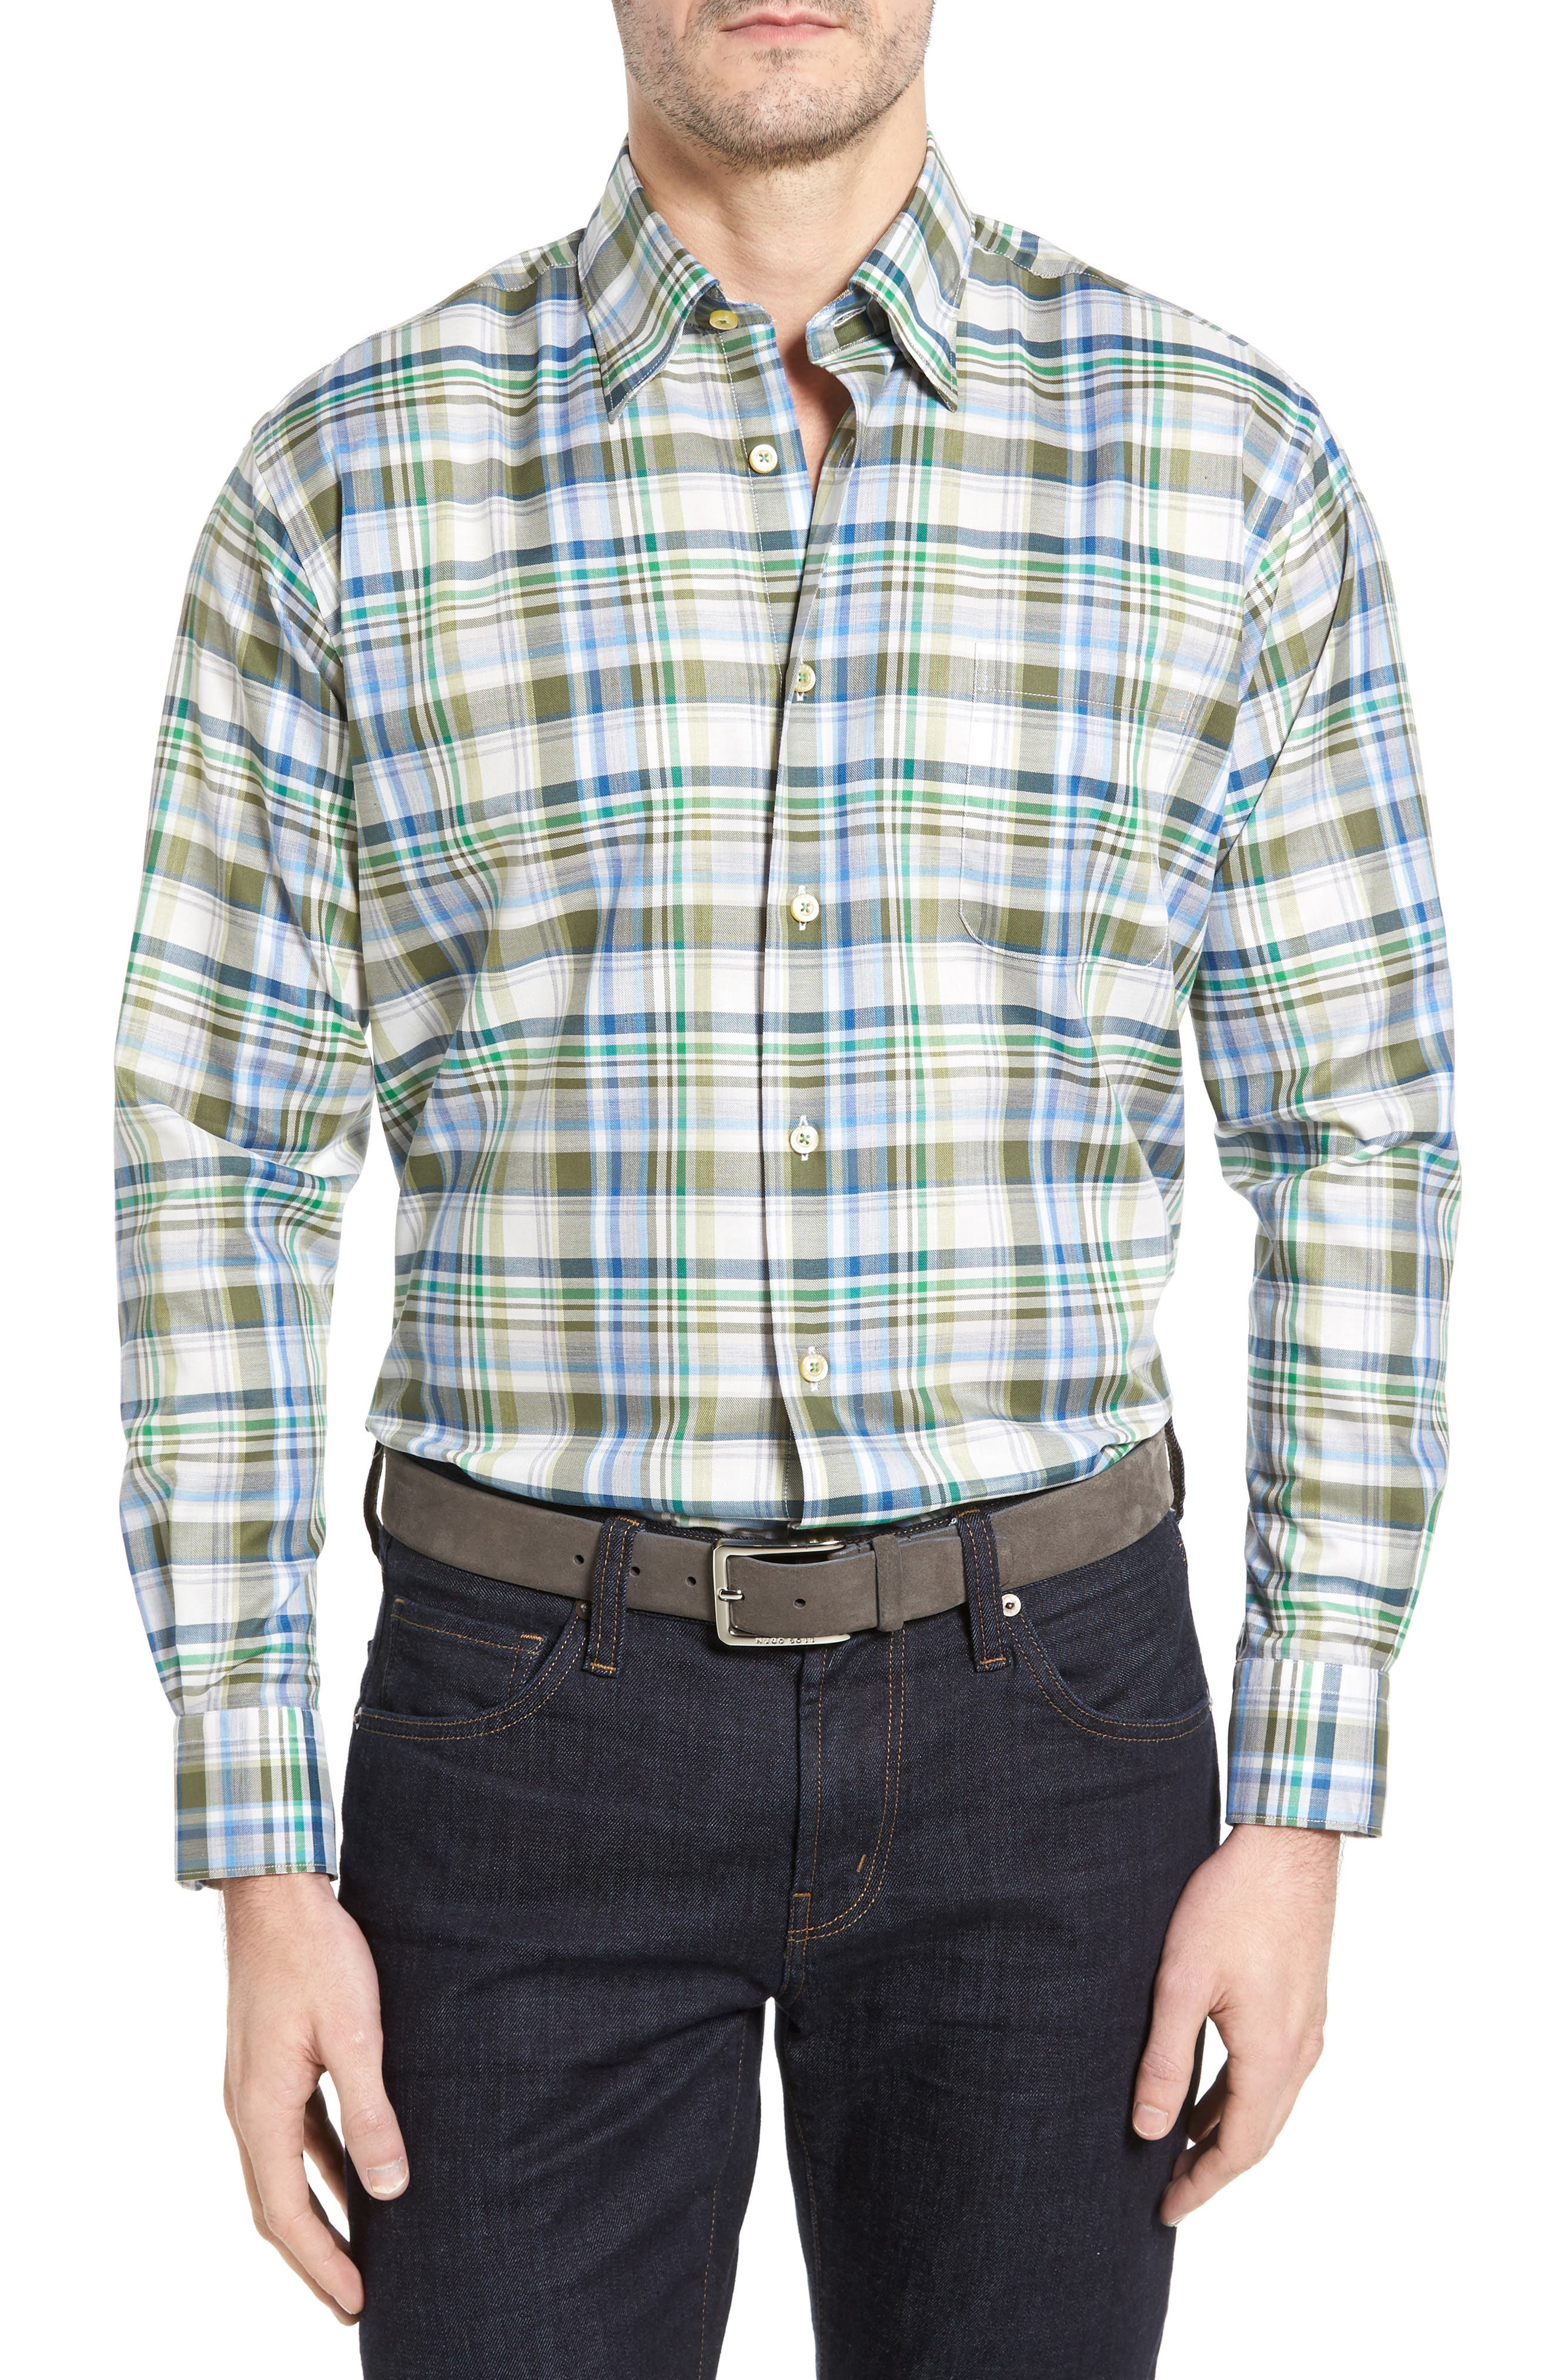 Anderson Classic Fit Plaid Micro Twill Sport Shirt,                         Main,                         color, 300